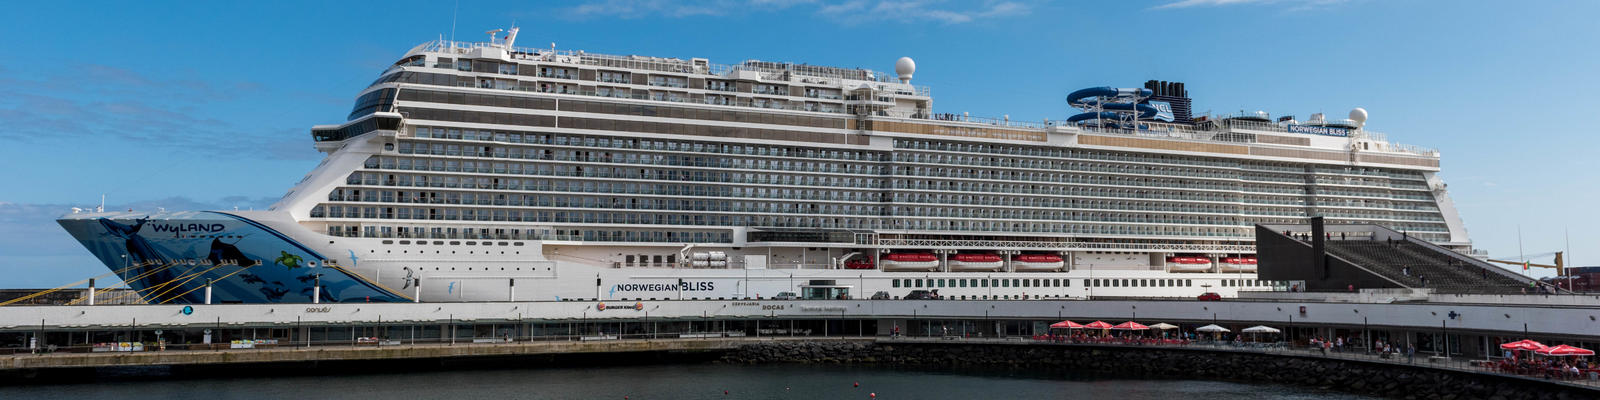 Norwegian Bliss Cruise Ship Review Photos Amp Departure Ports On Cruise Critic